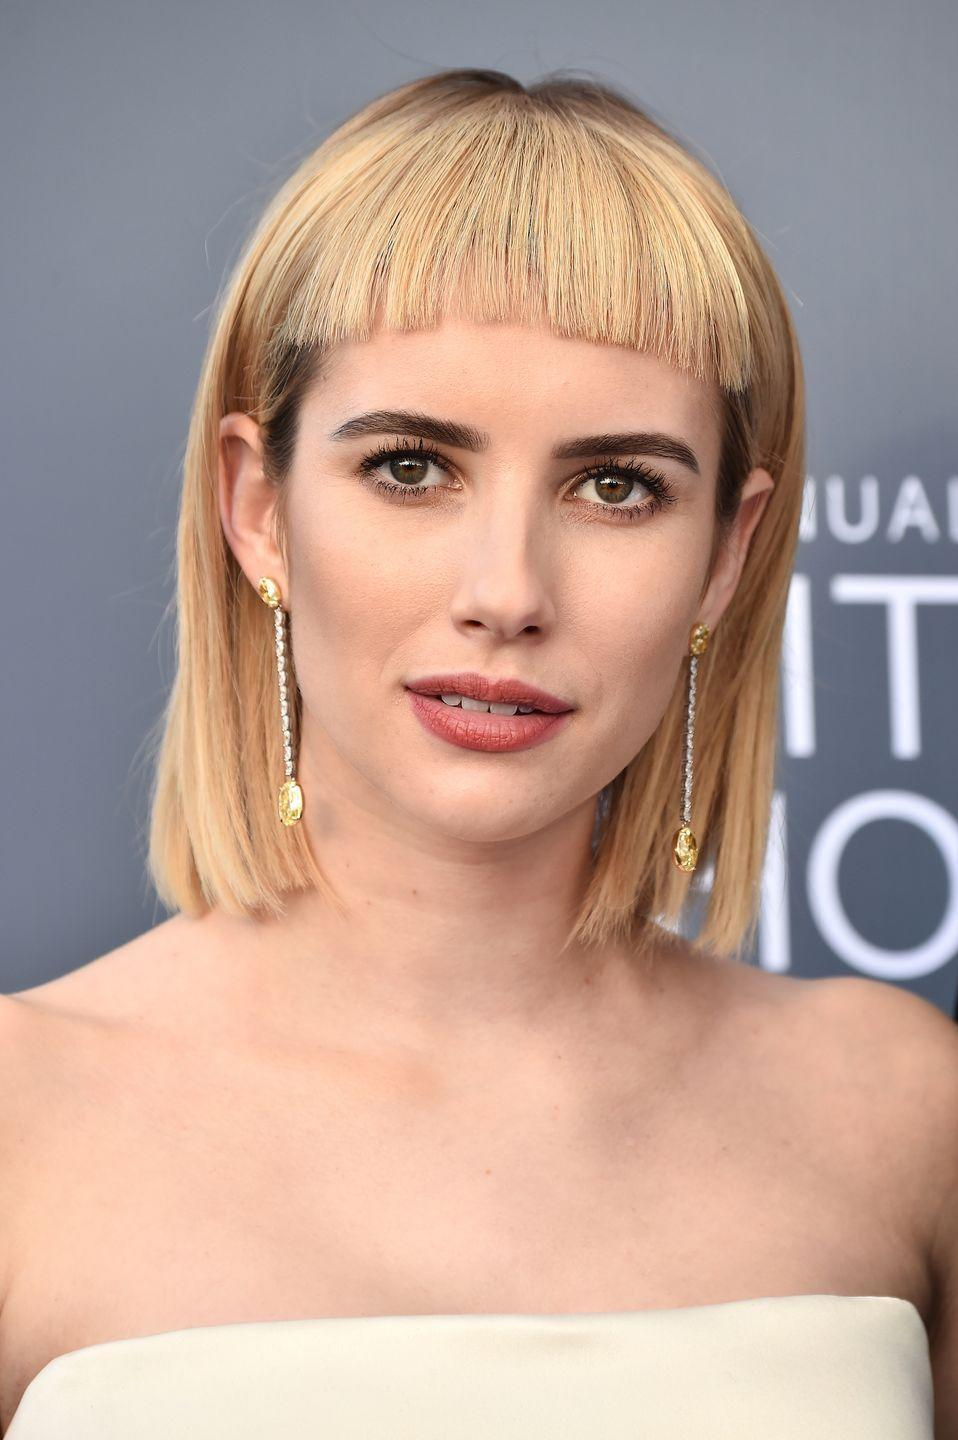 <p>These blunt bangs give your 'do a dramatic, stunning look, but just a warning: This perfectly straight style takes a lot of maintenance and frequent trims.</p>